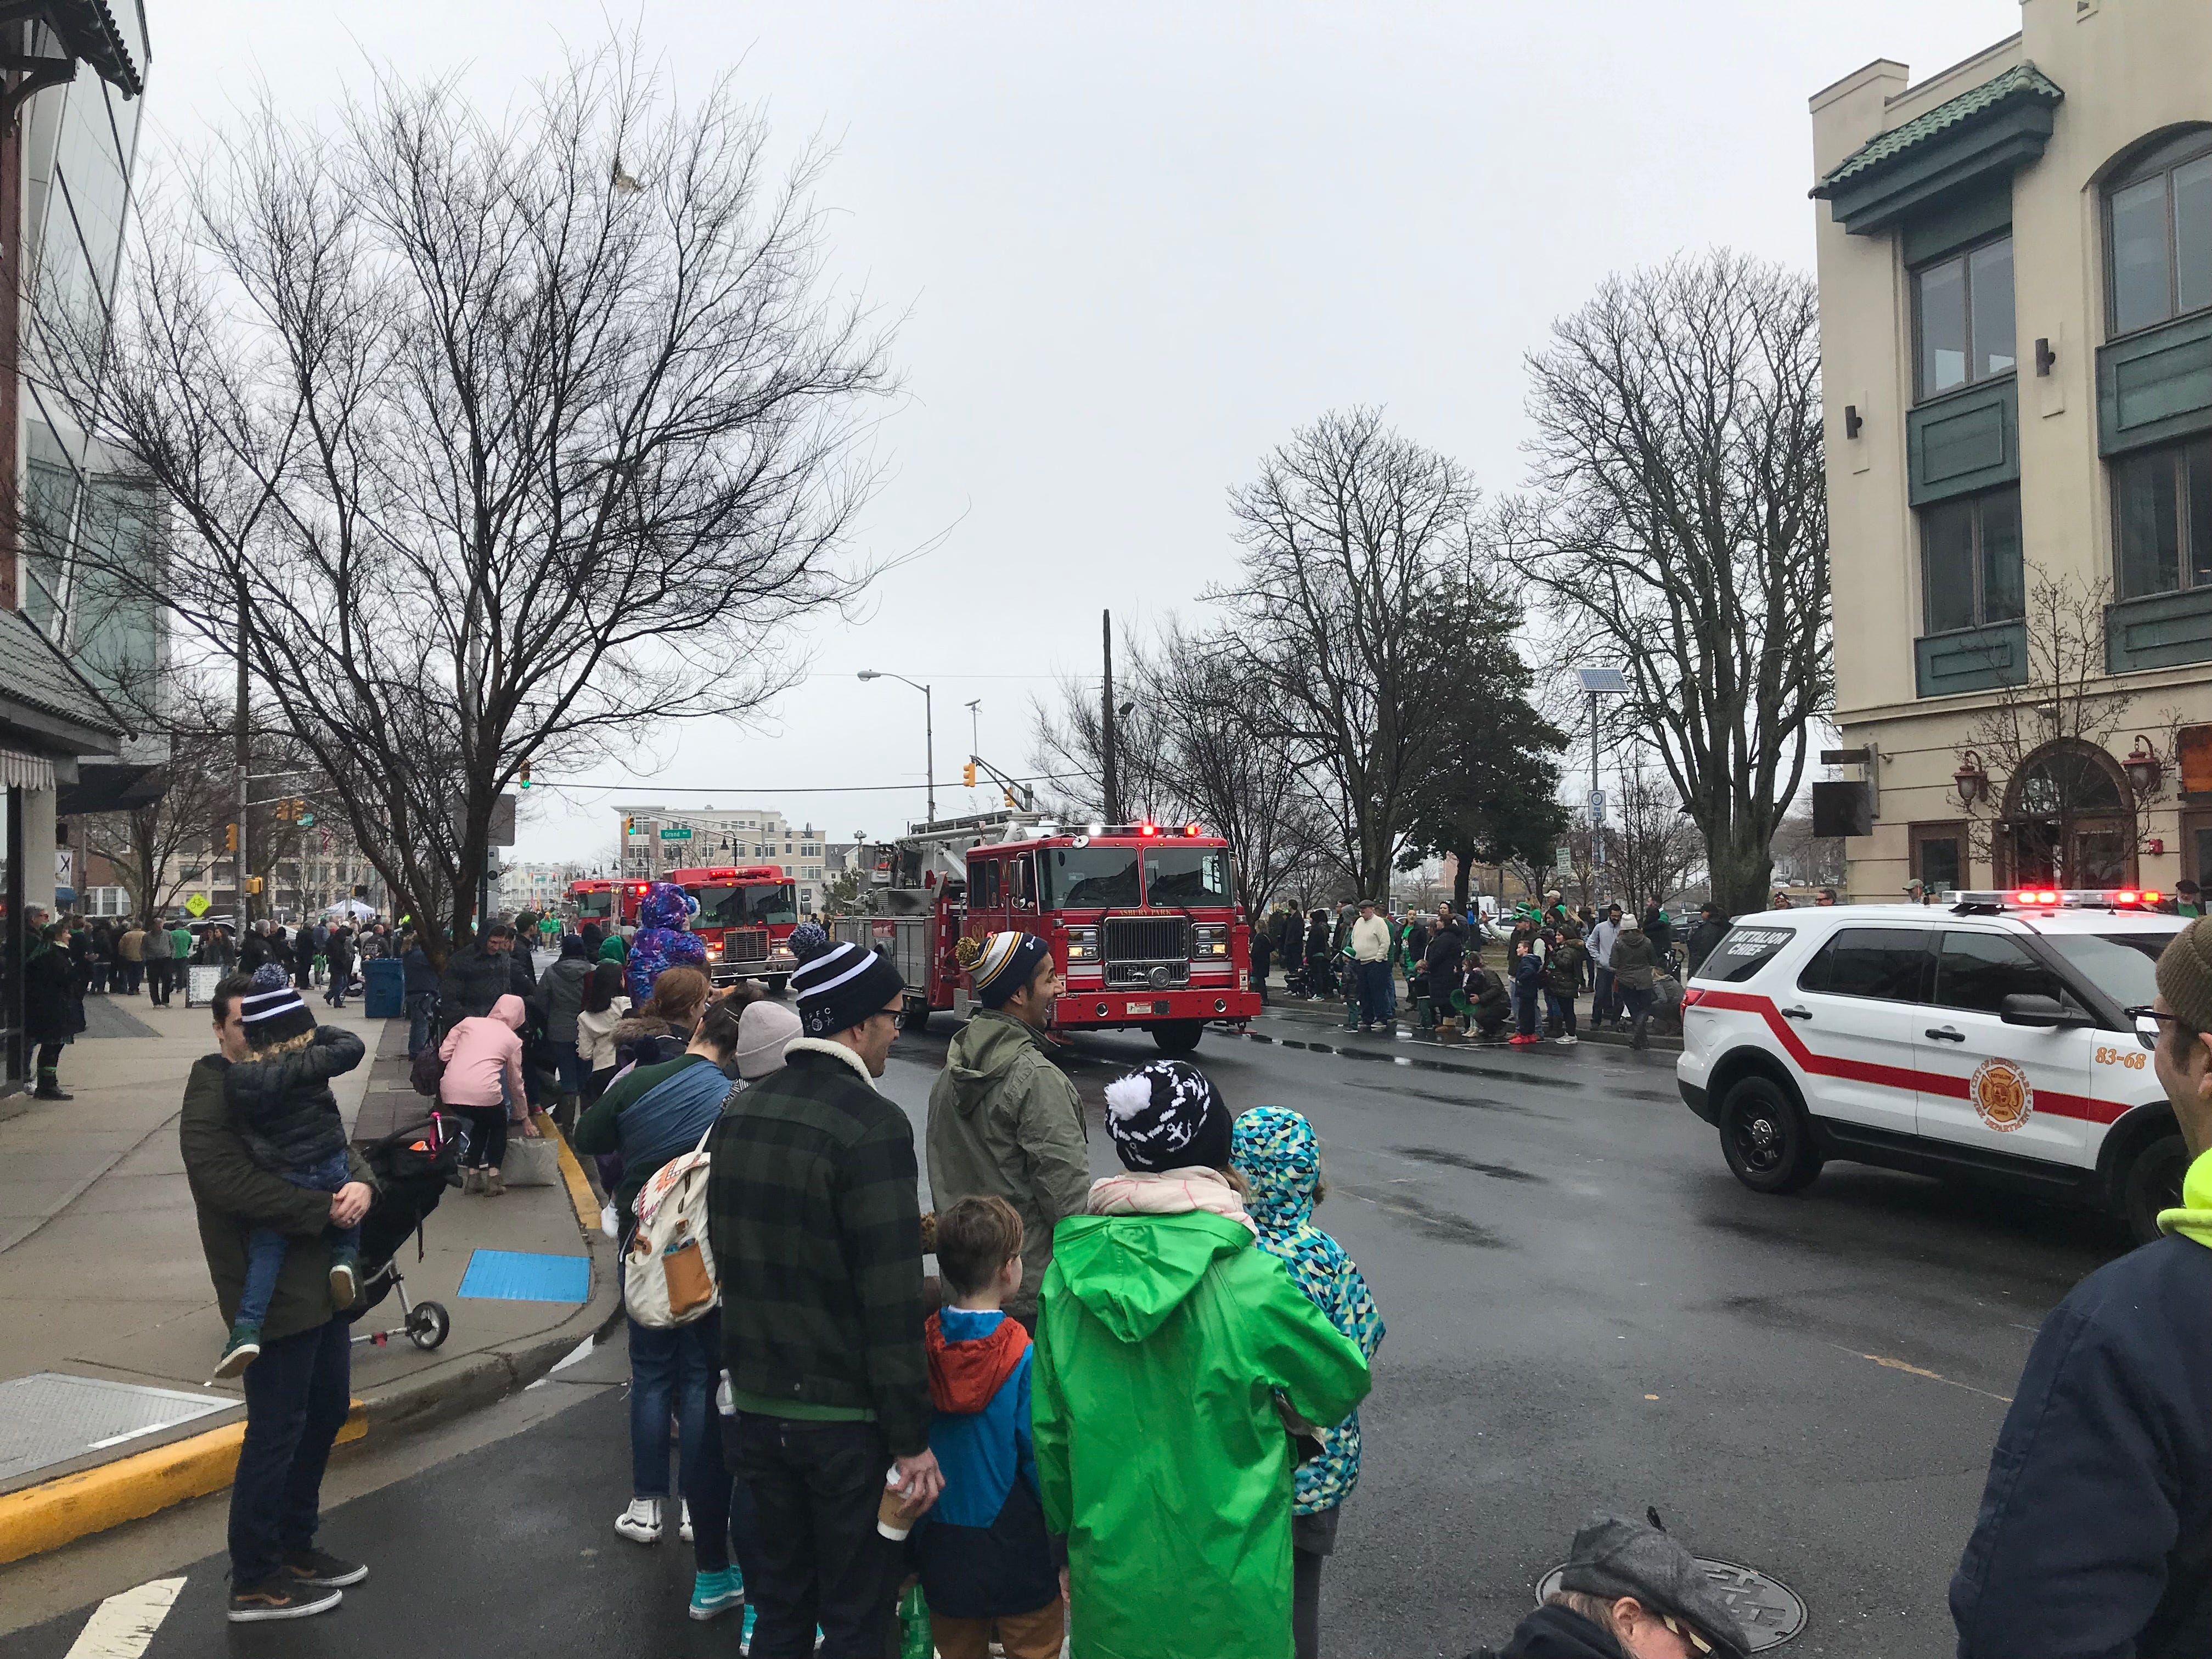 Scenes from the Asbury Park St. Patrick's Day Parade on March 10, 2019.